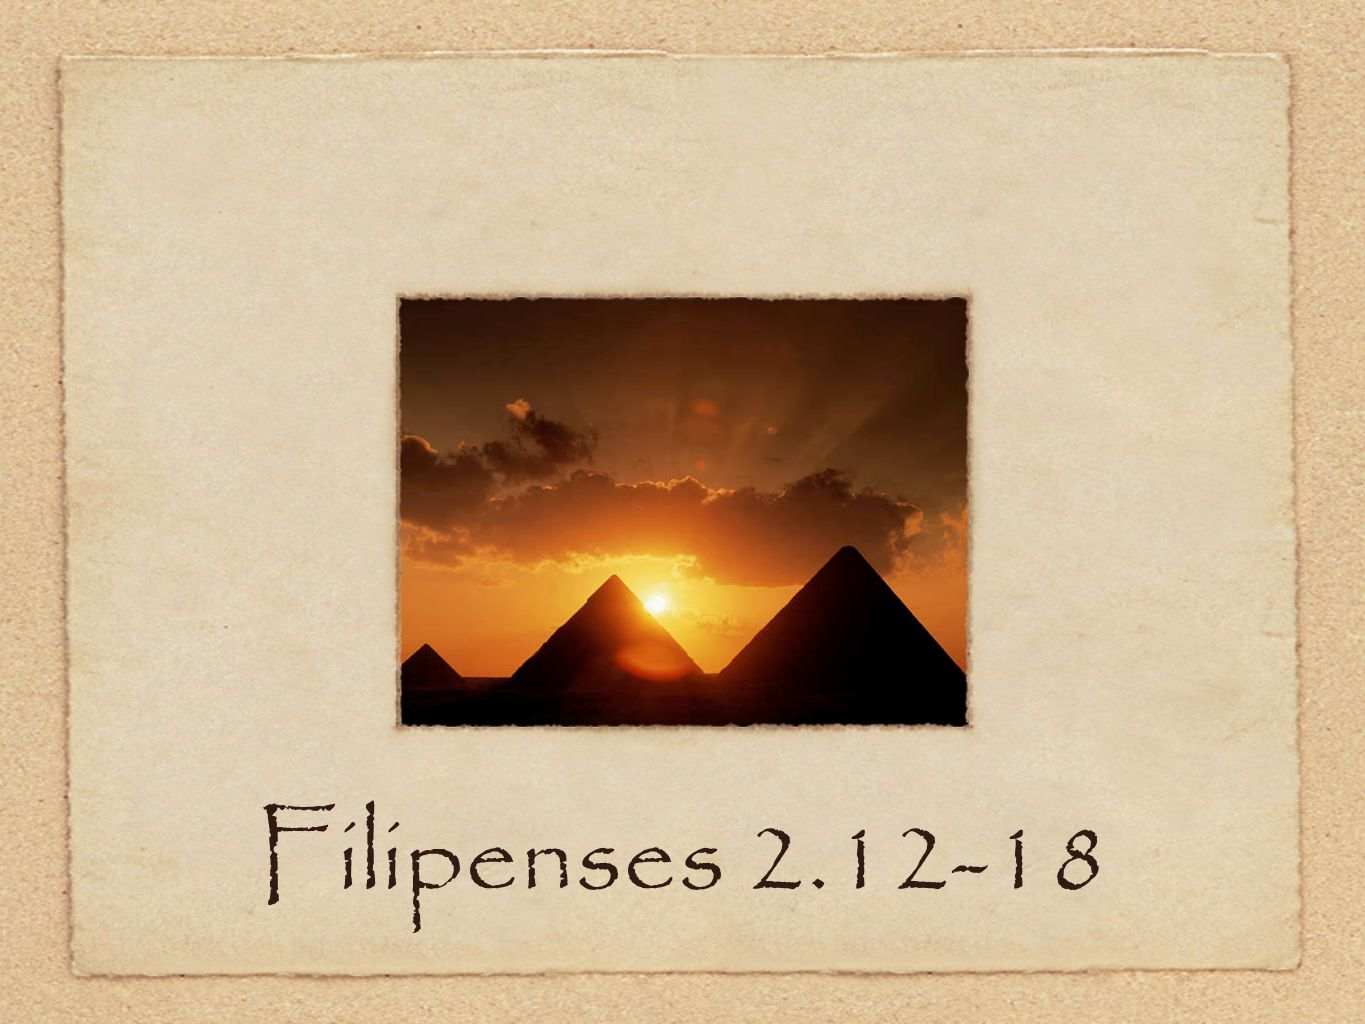 Filipenses 2.12-18